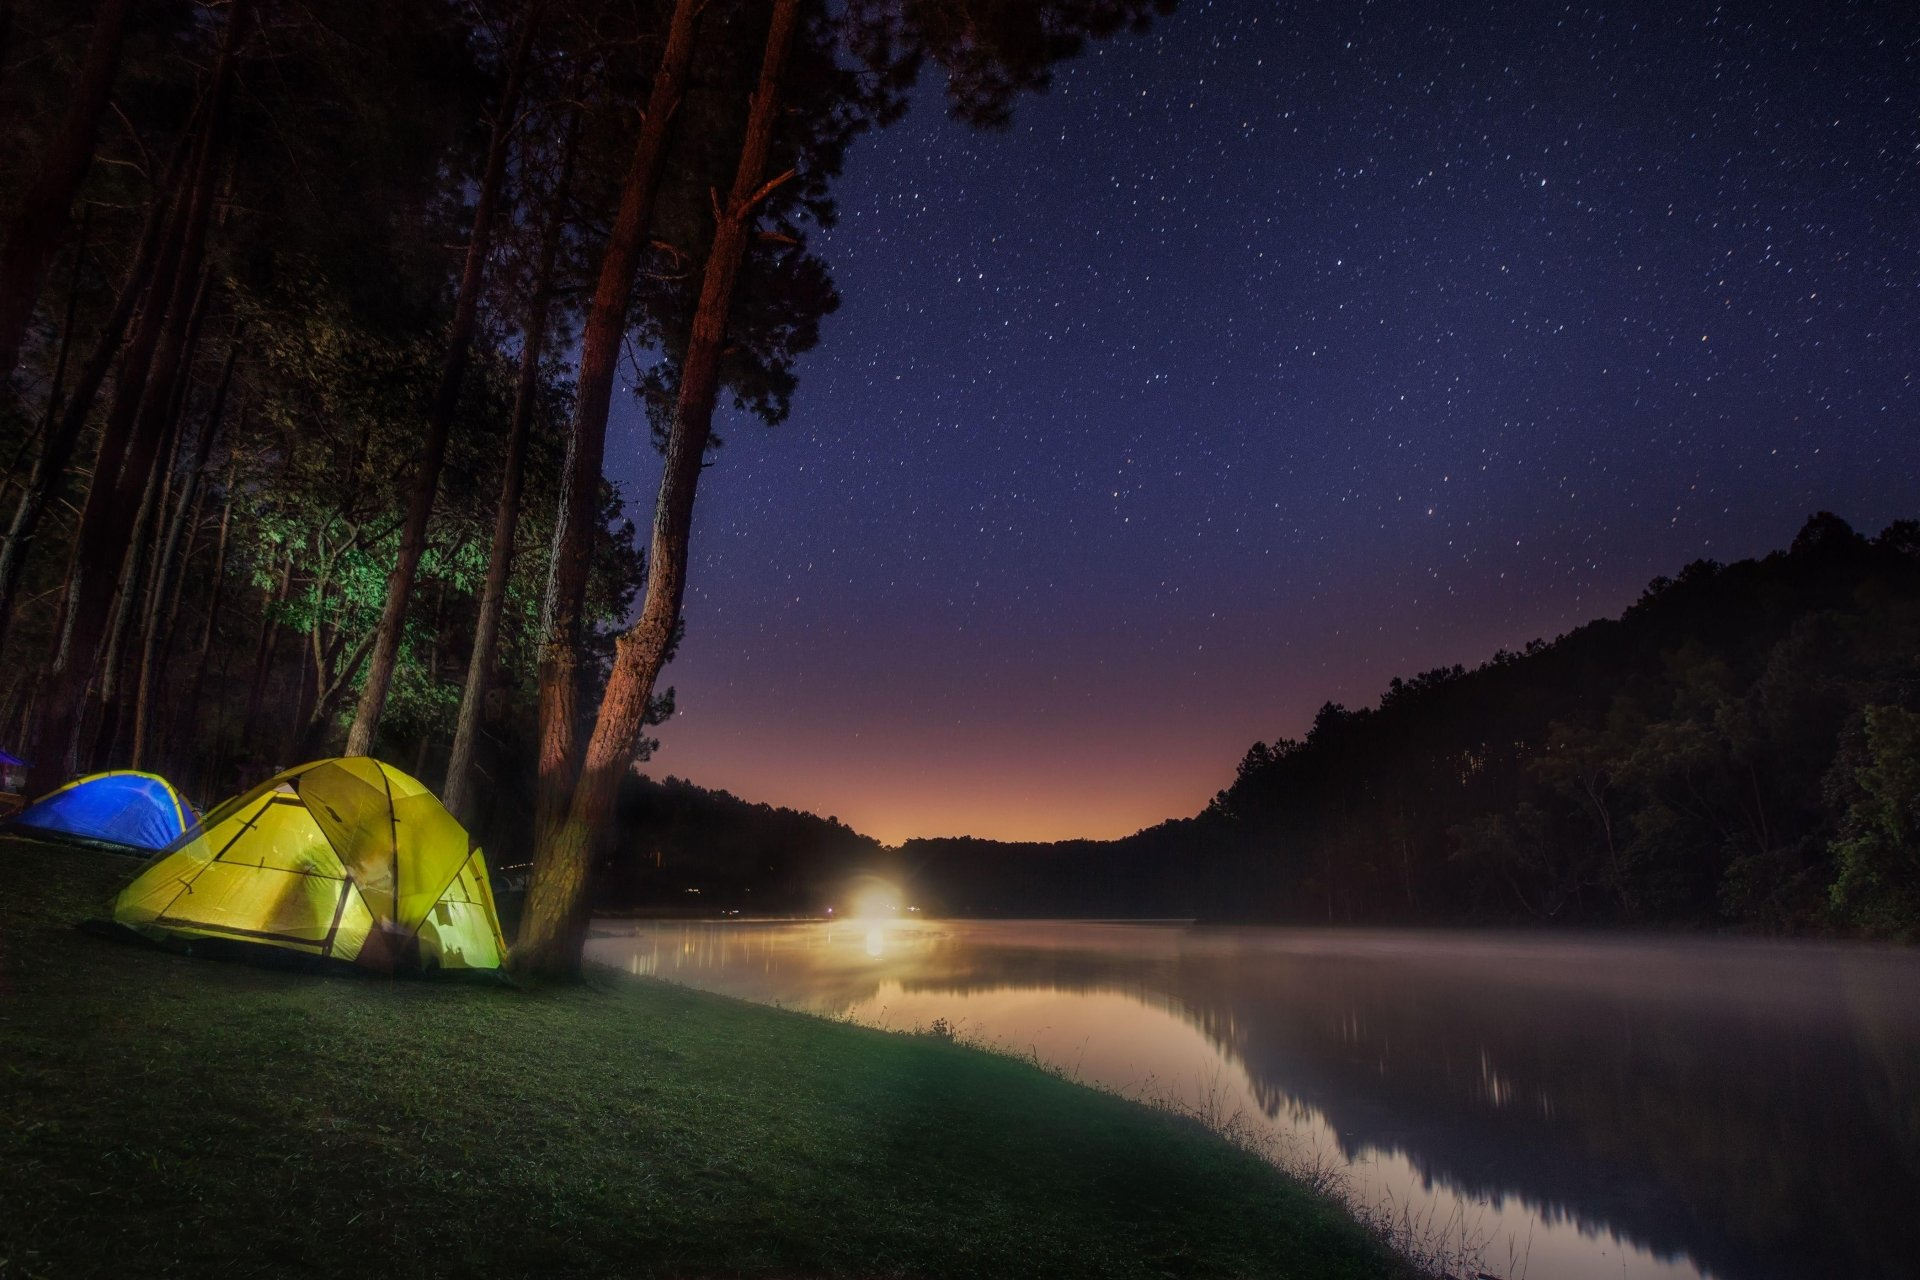 Camping Tents for Overnight, Outdoor Adventures. Understanding the different types of camping and outdoor tents available will help you choose the best camping tents for your needs. A tent to take on a long backpacking expedition will require a different tent that you might use on a family camping trip.